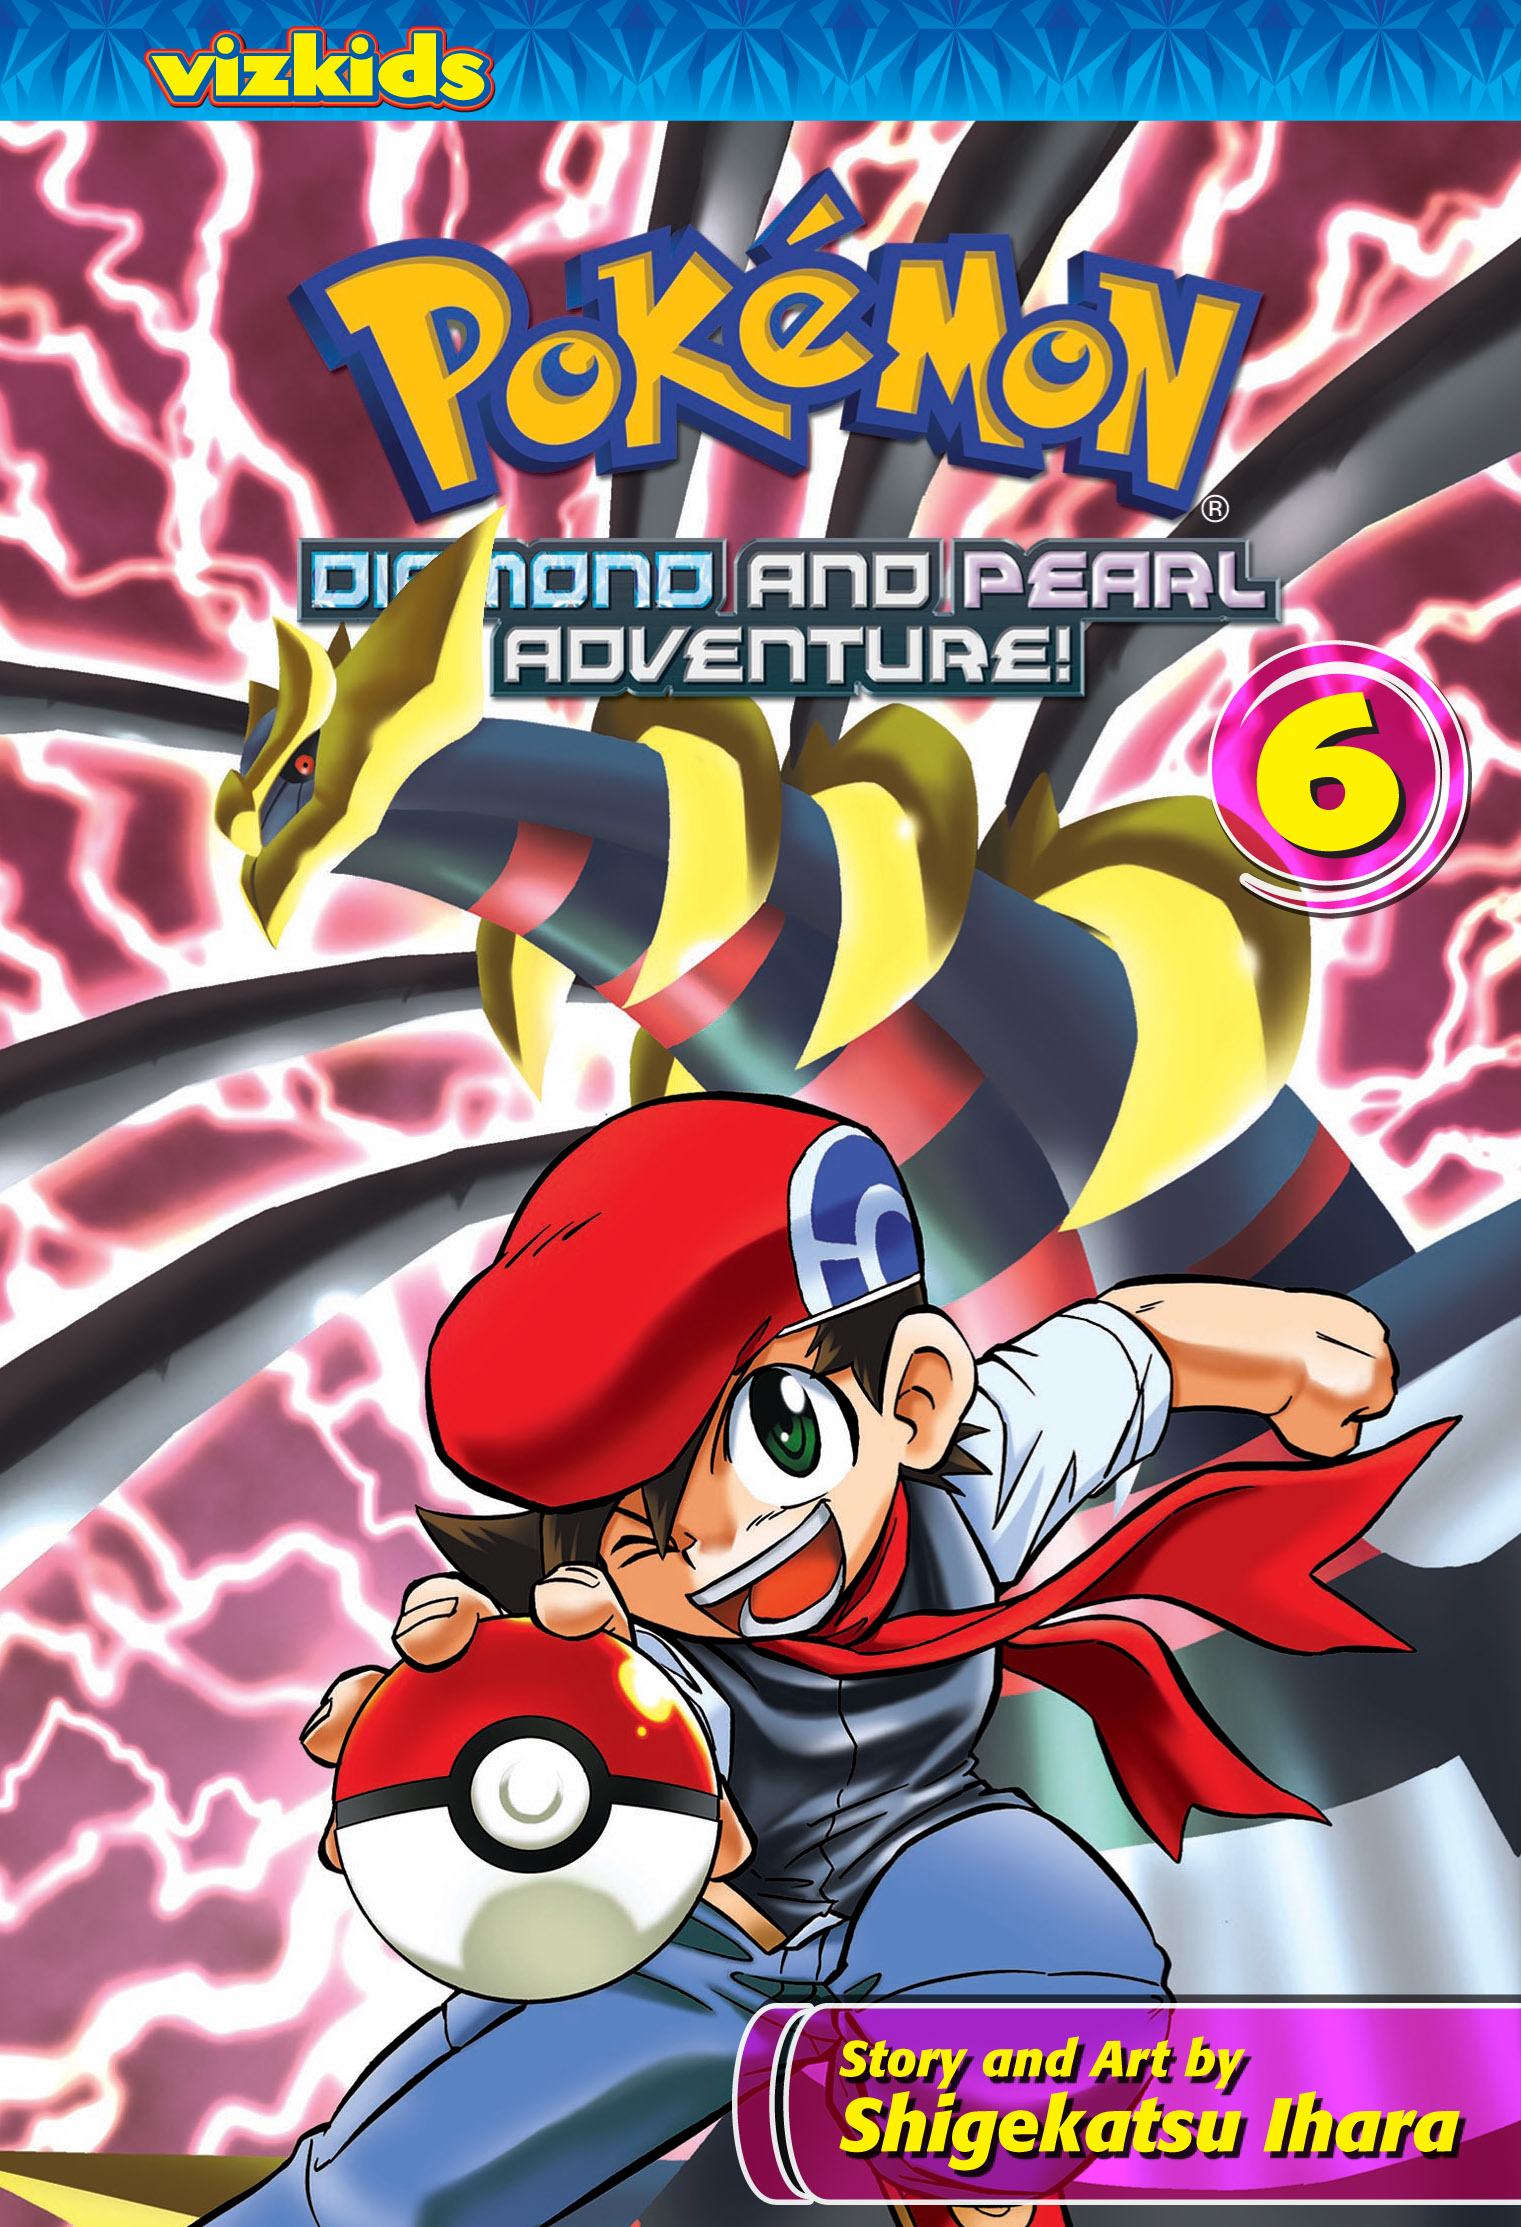 pokémon diamond and pearl adventure!: volume 6 | pokémon wiki